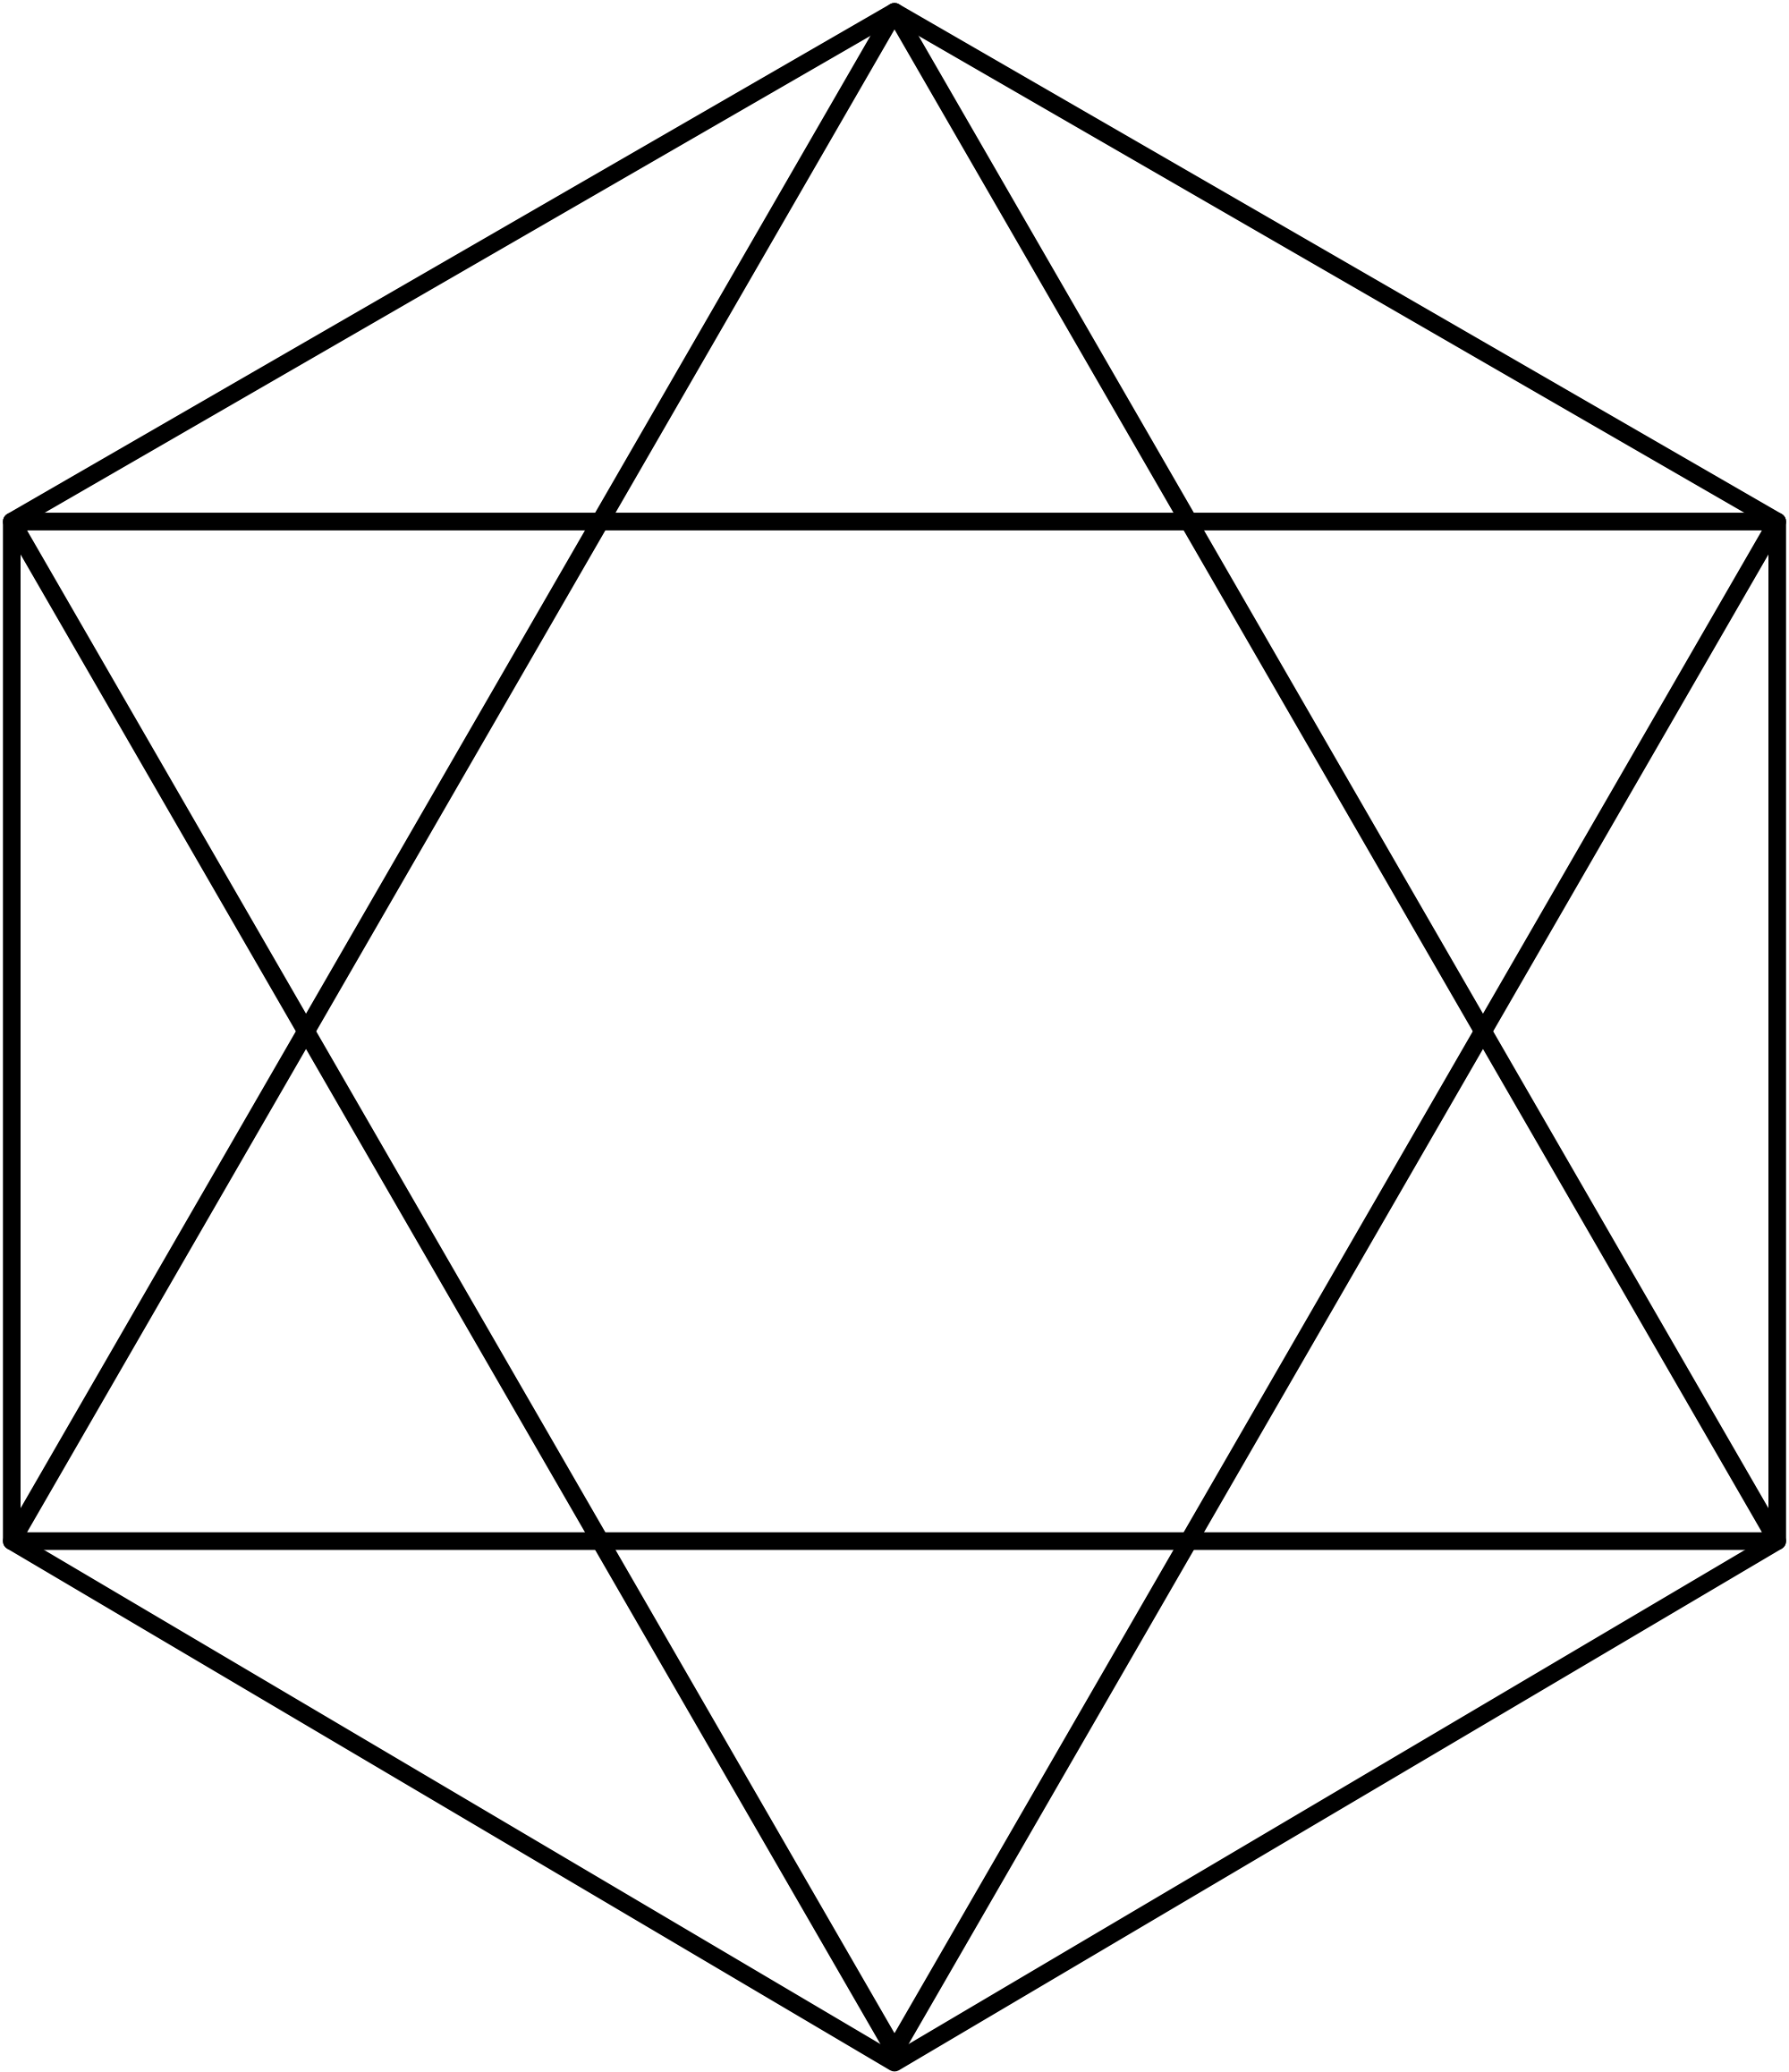 File:Hexagram and Hexagon.svg.